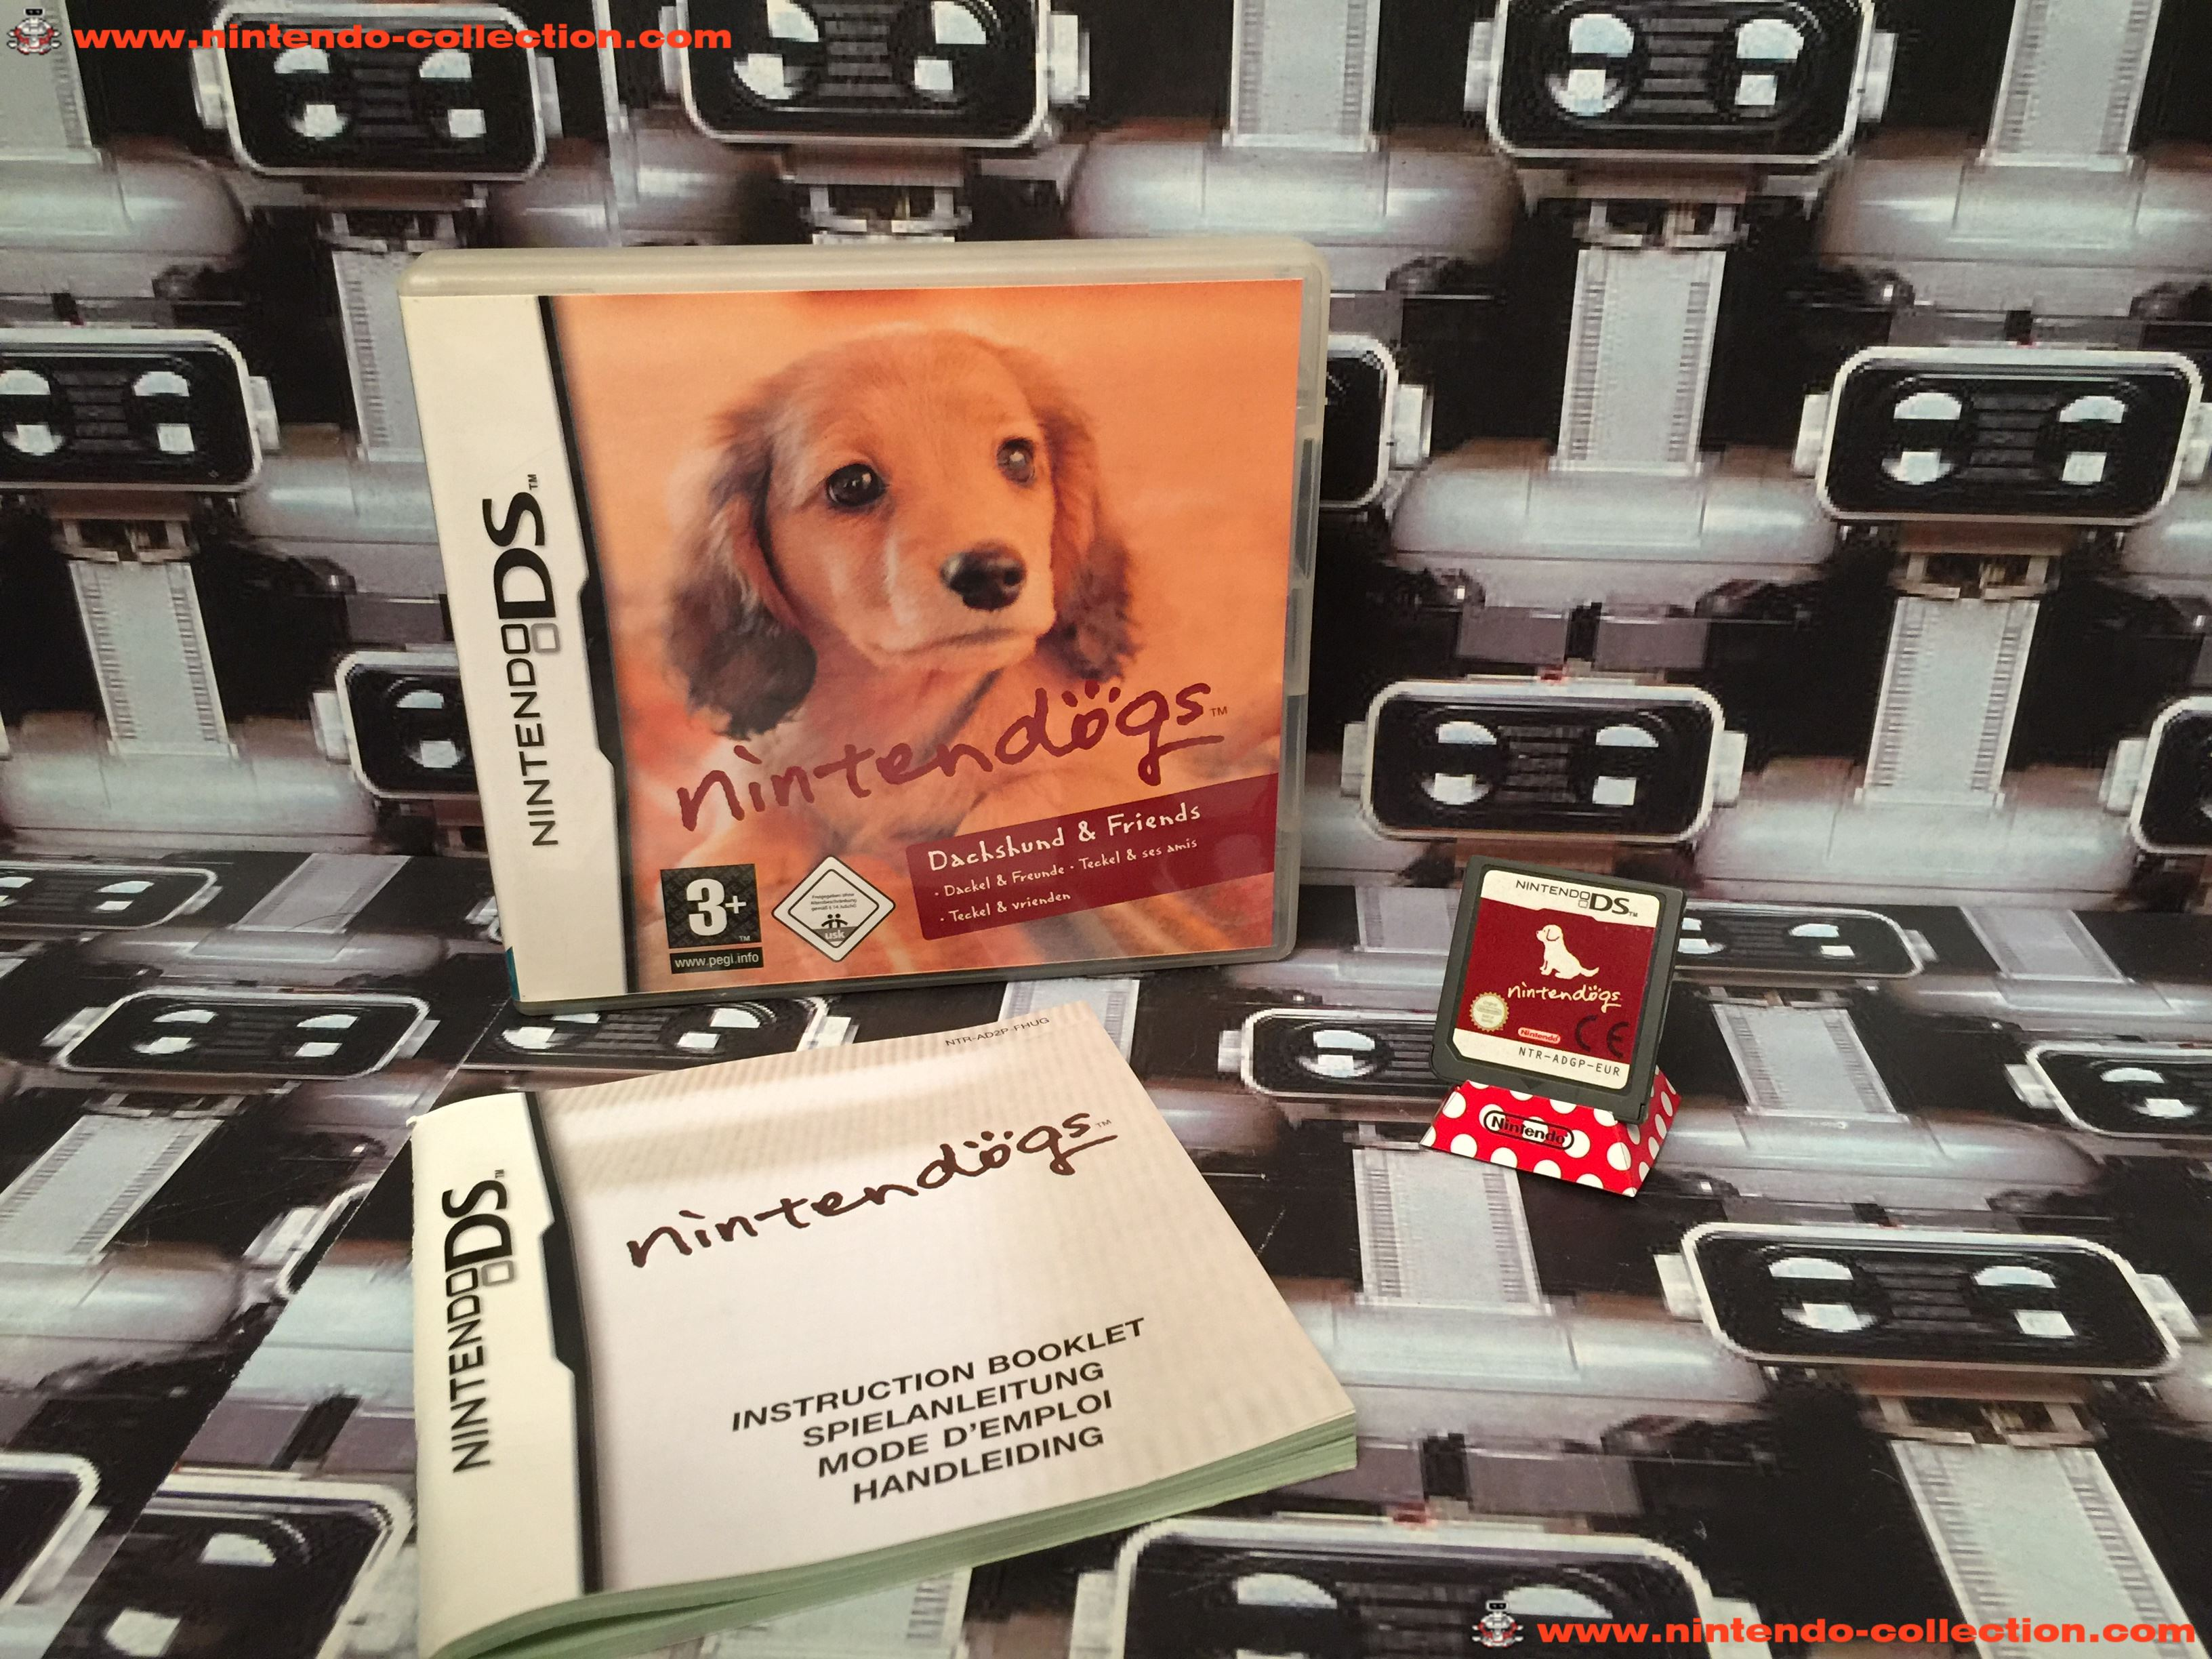 www.nintendo-collection.com - Nintendo DS Jeux Game Nintendogs Dachshund & friends Teckel et ses ami